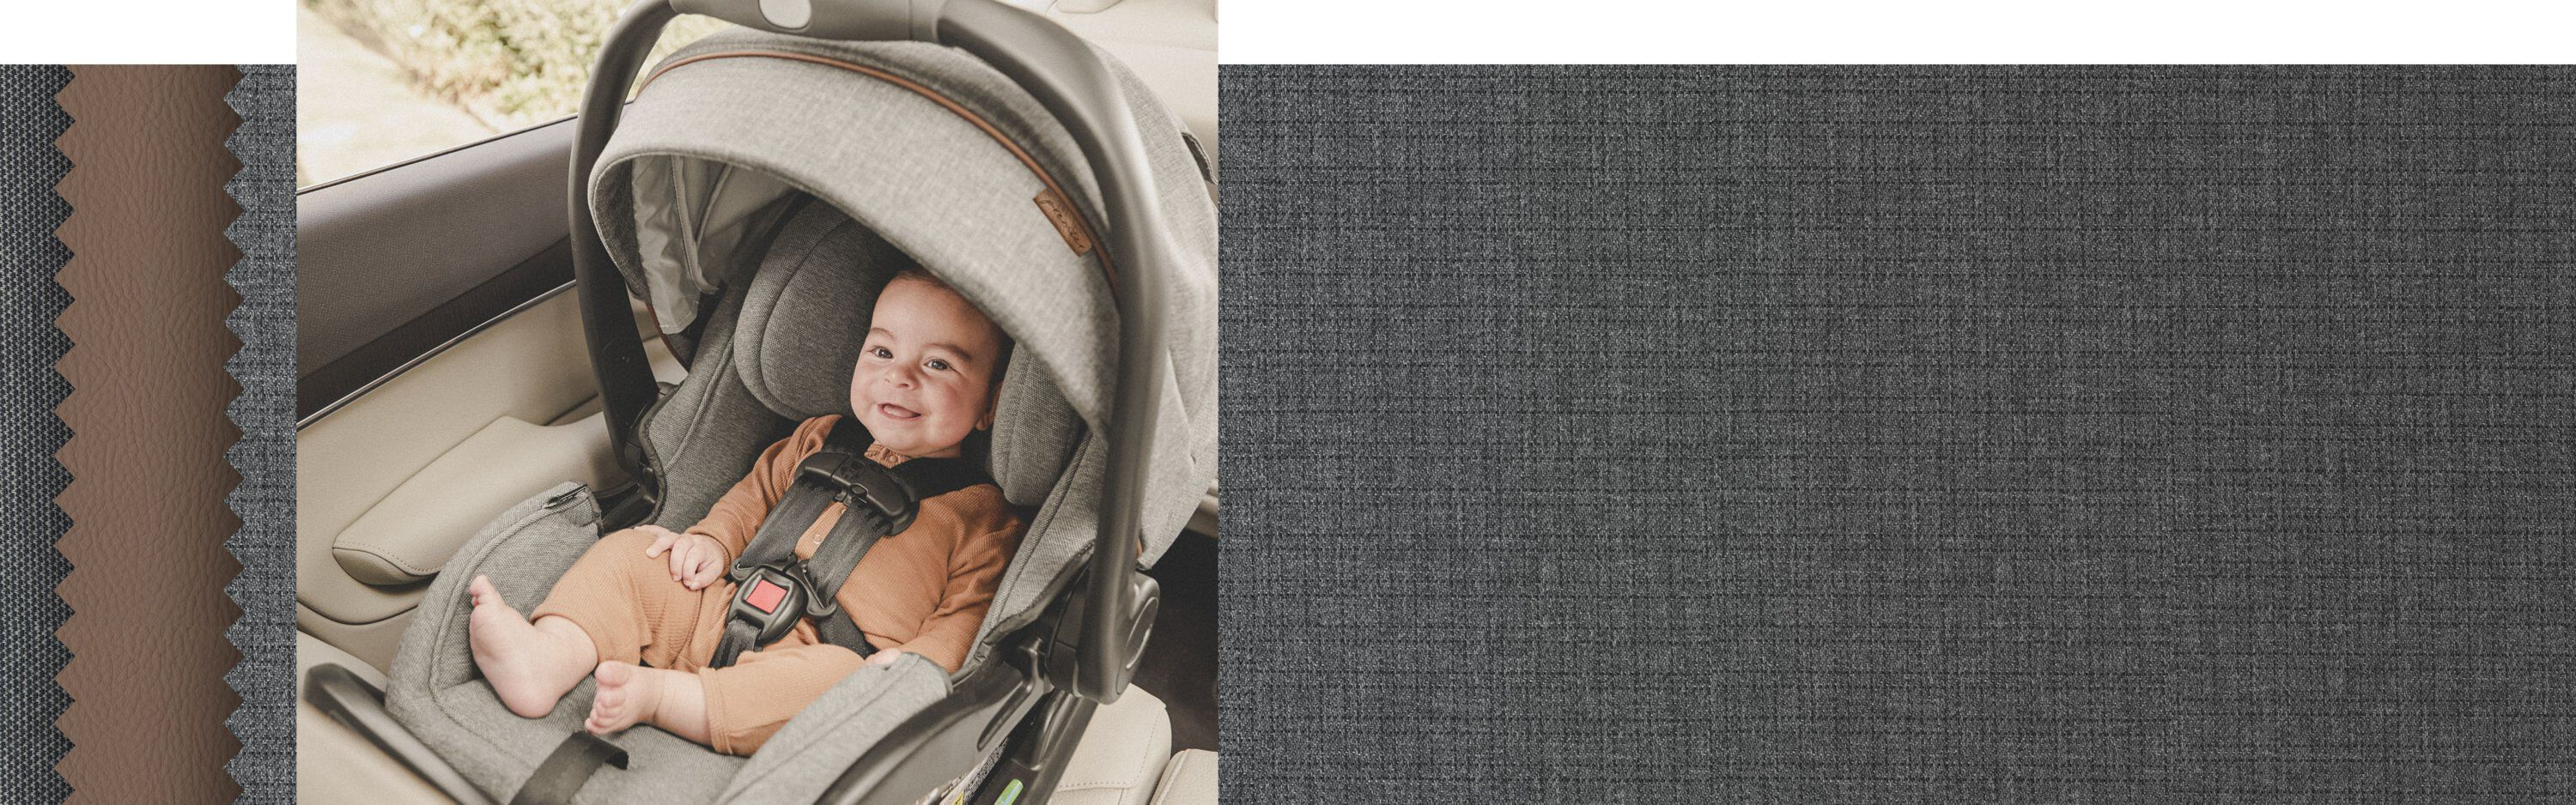 premier convertible car seat in rear facing position inside vehicle